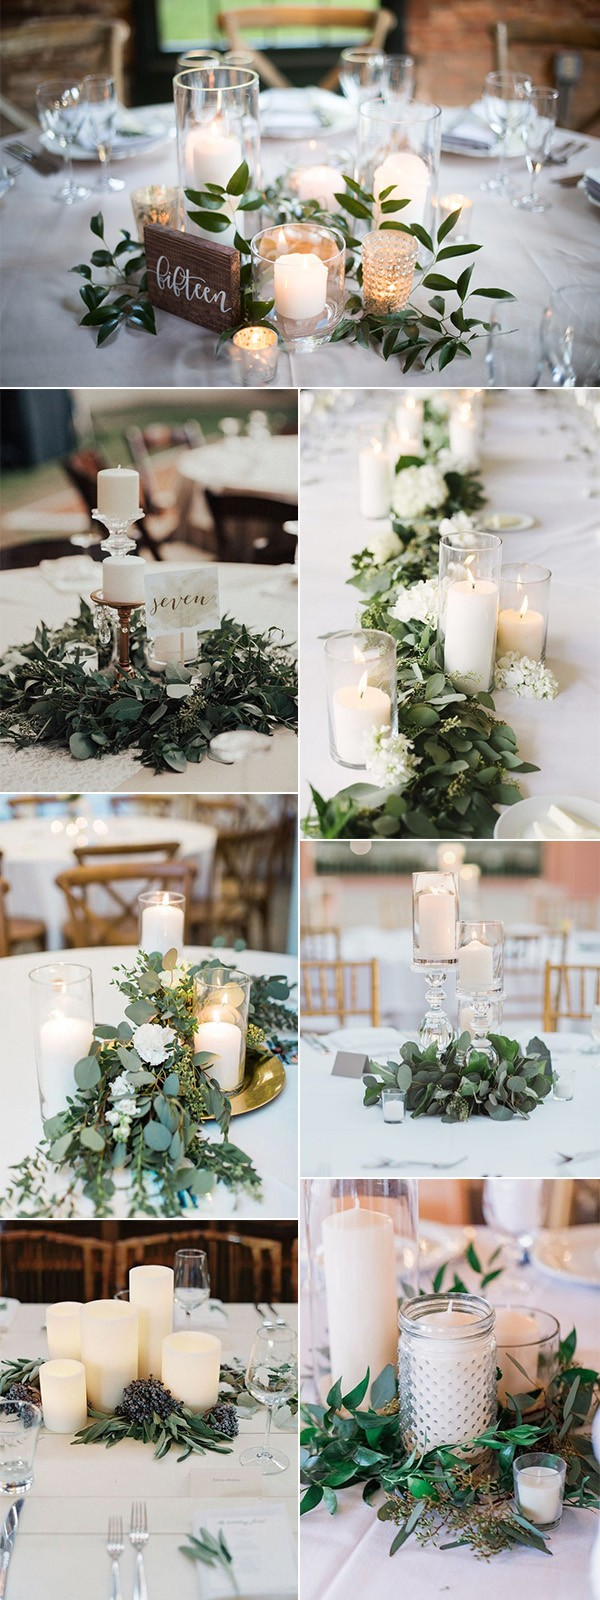 budget friendly elegant wedding centerpieces with candles